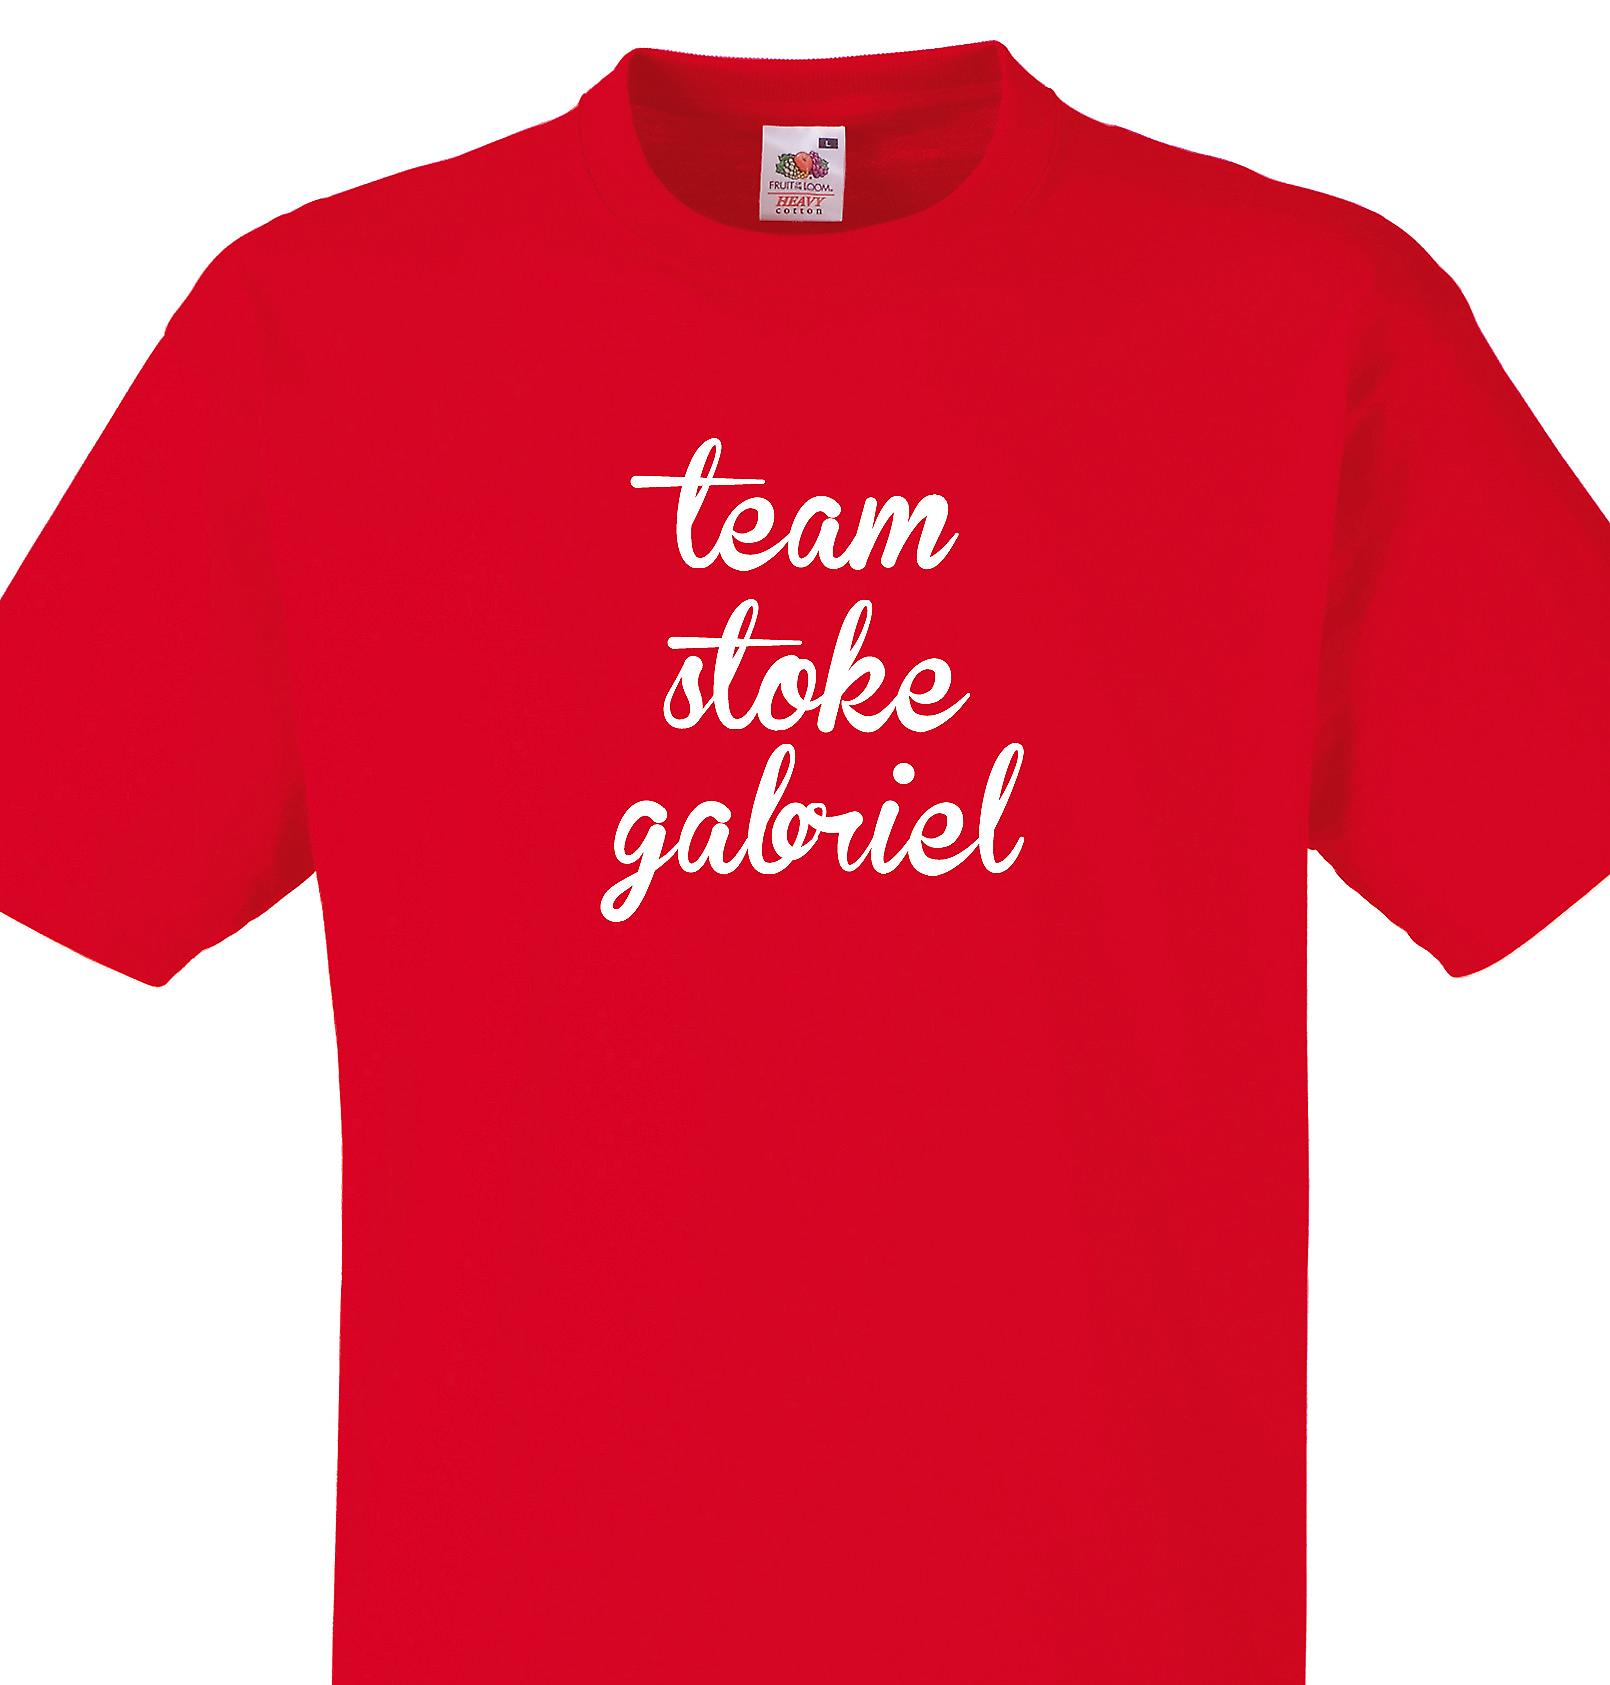 Team Stoke gabriel Red T shirt